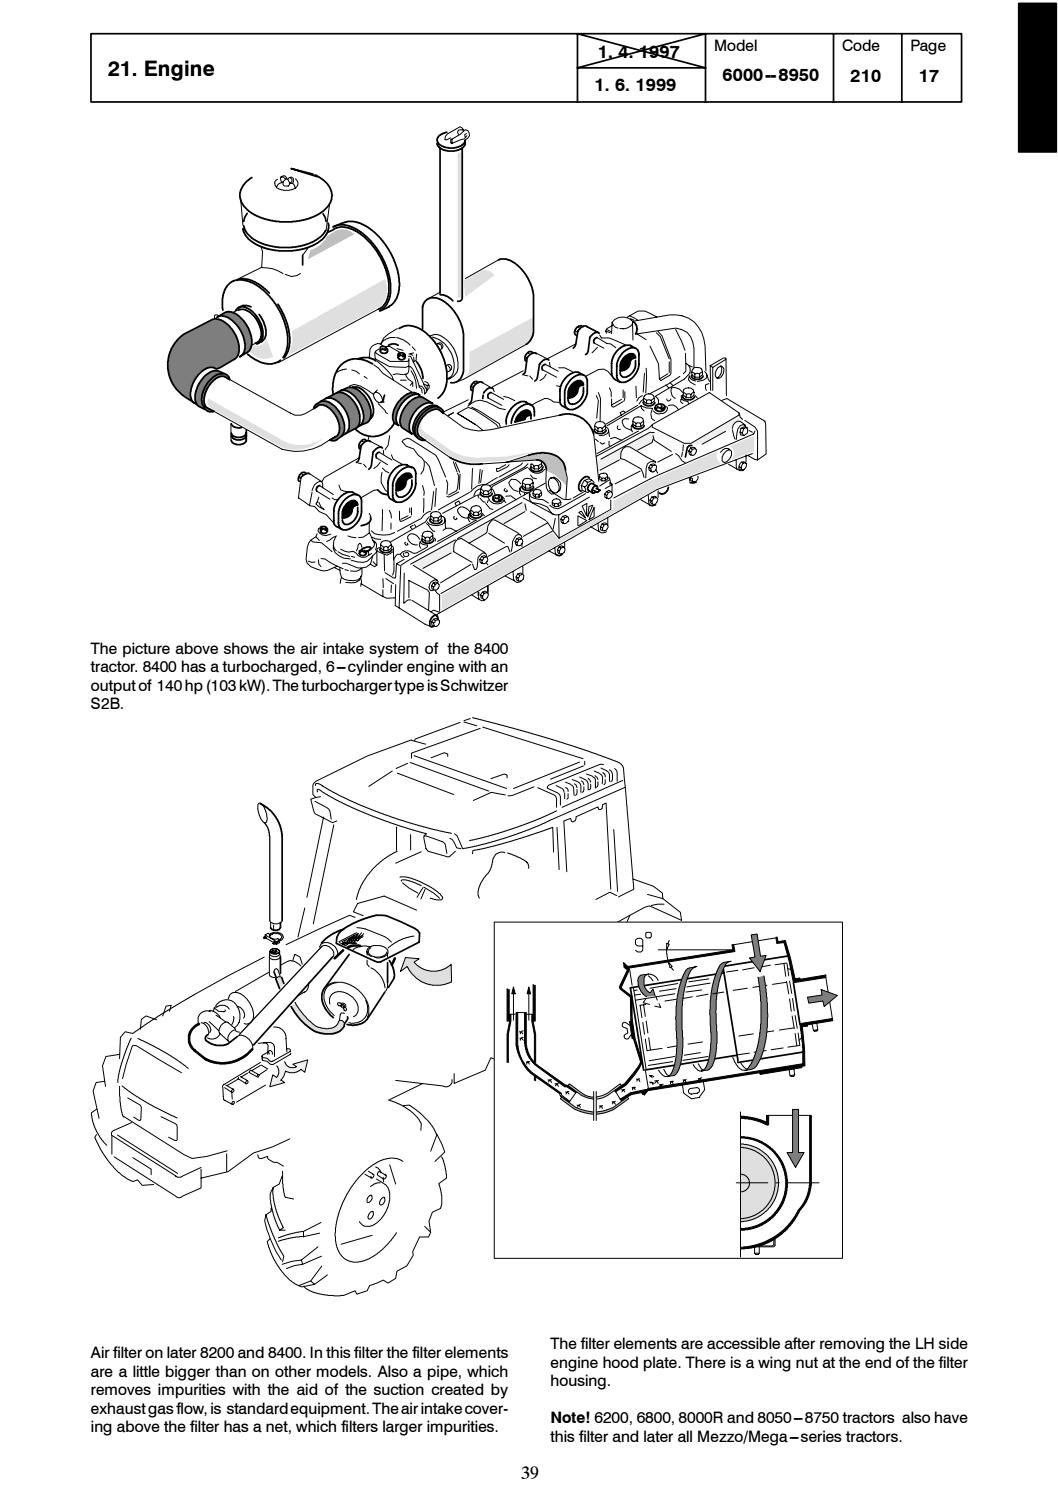 Valtra valmet 8000 tractor service repair manual by